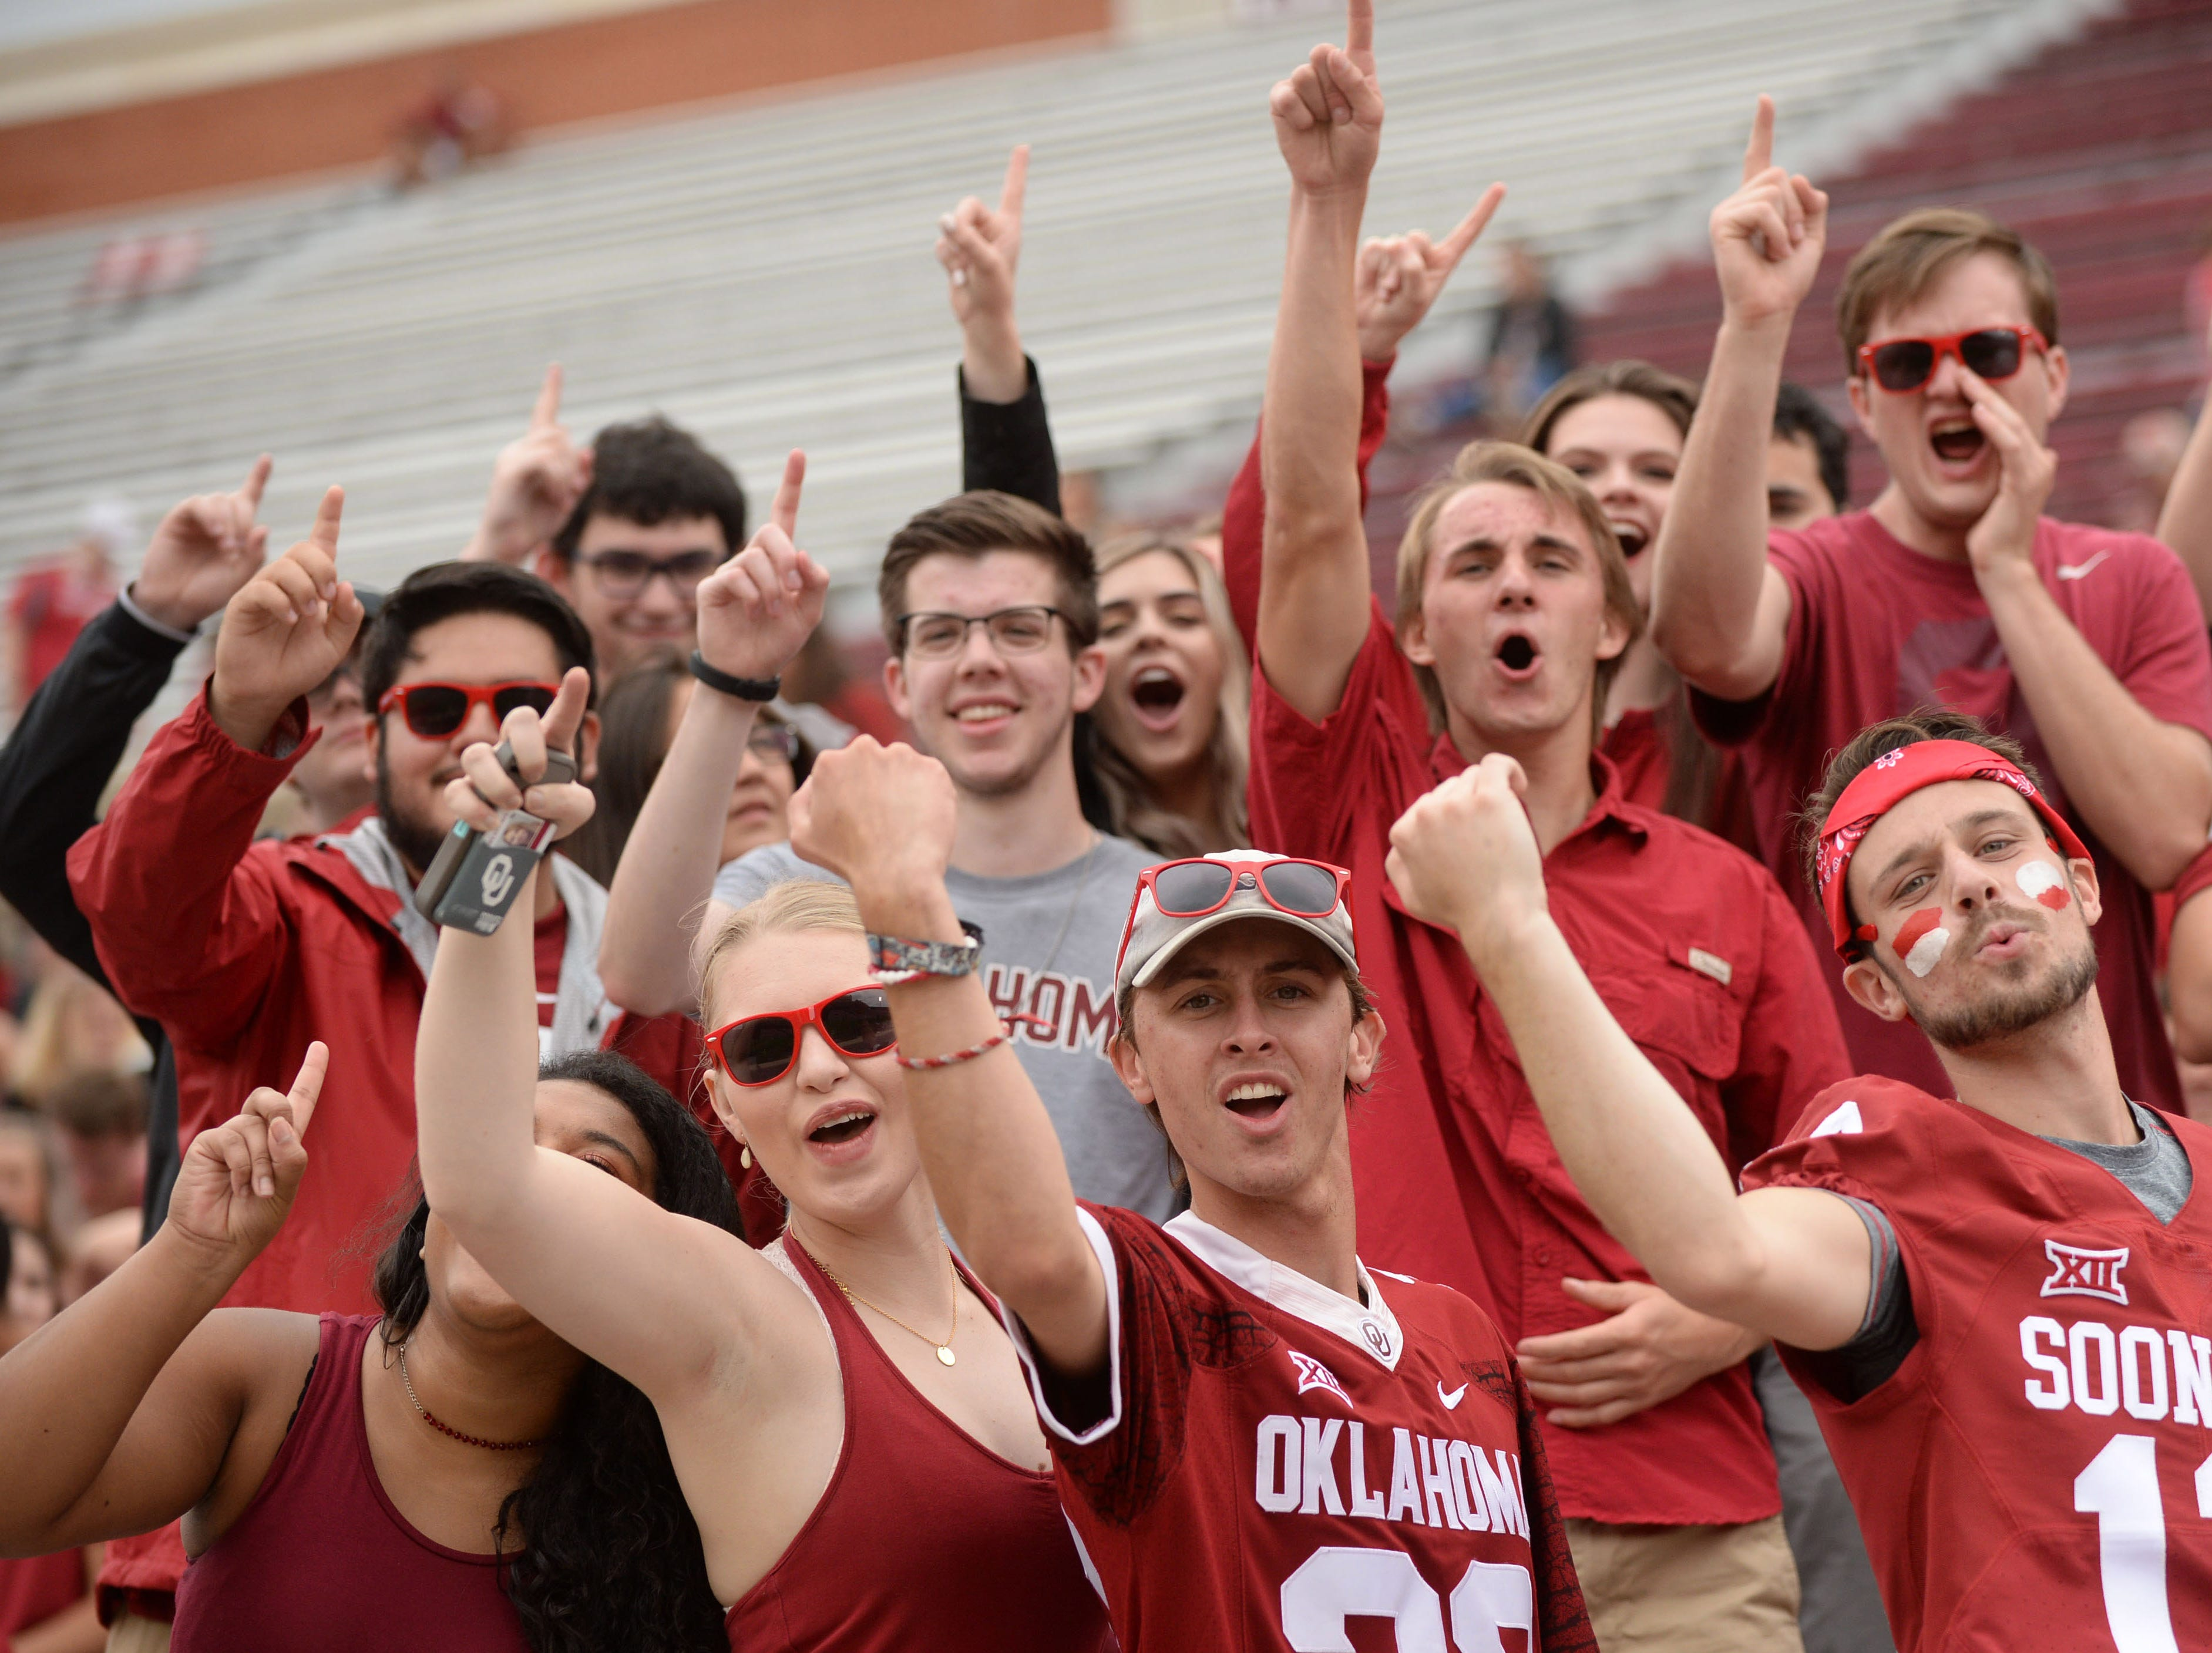 Oklahoma fans cheer prior to a game against UCLA.